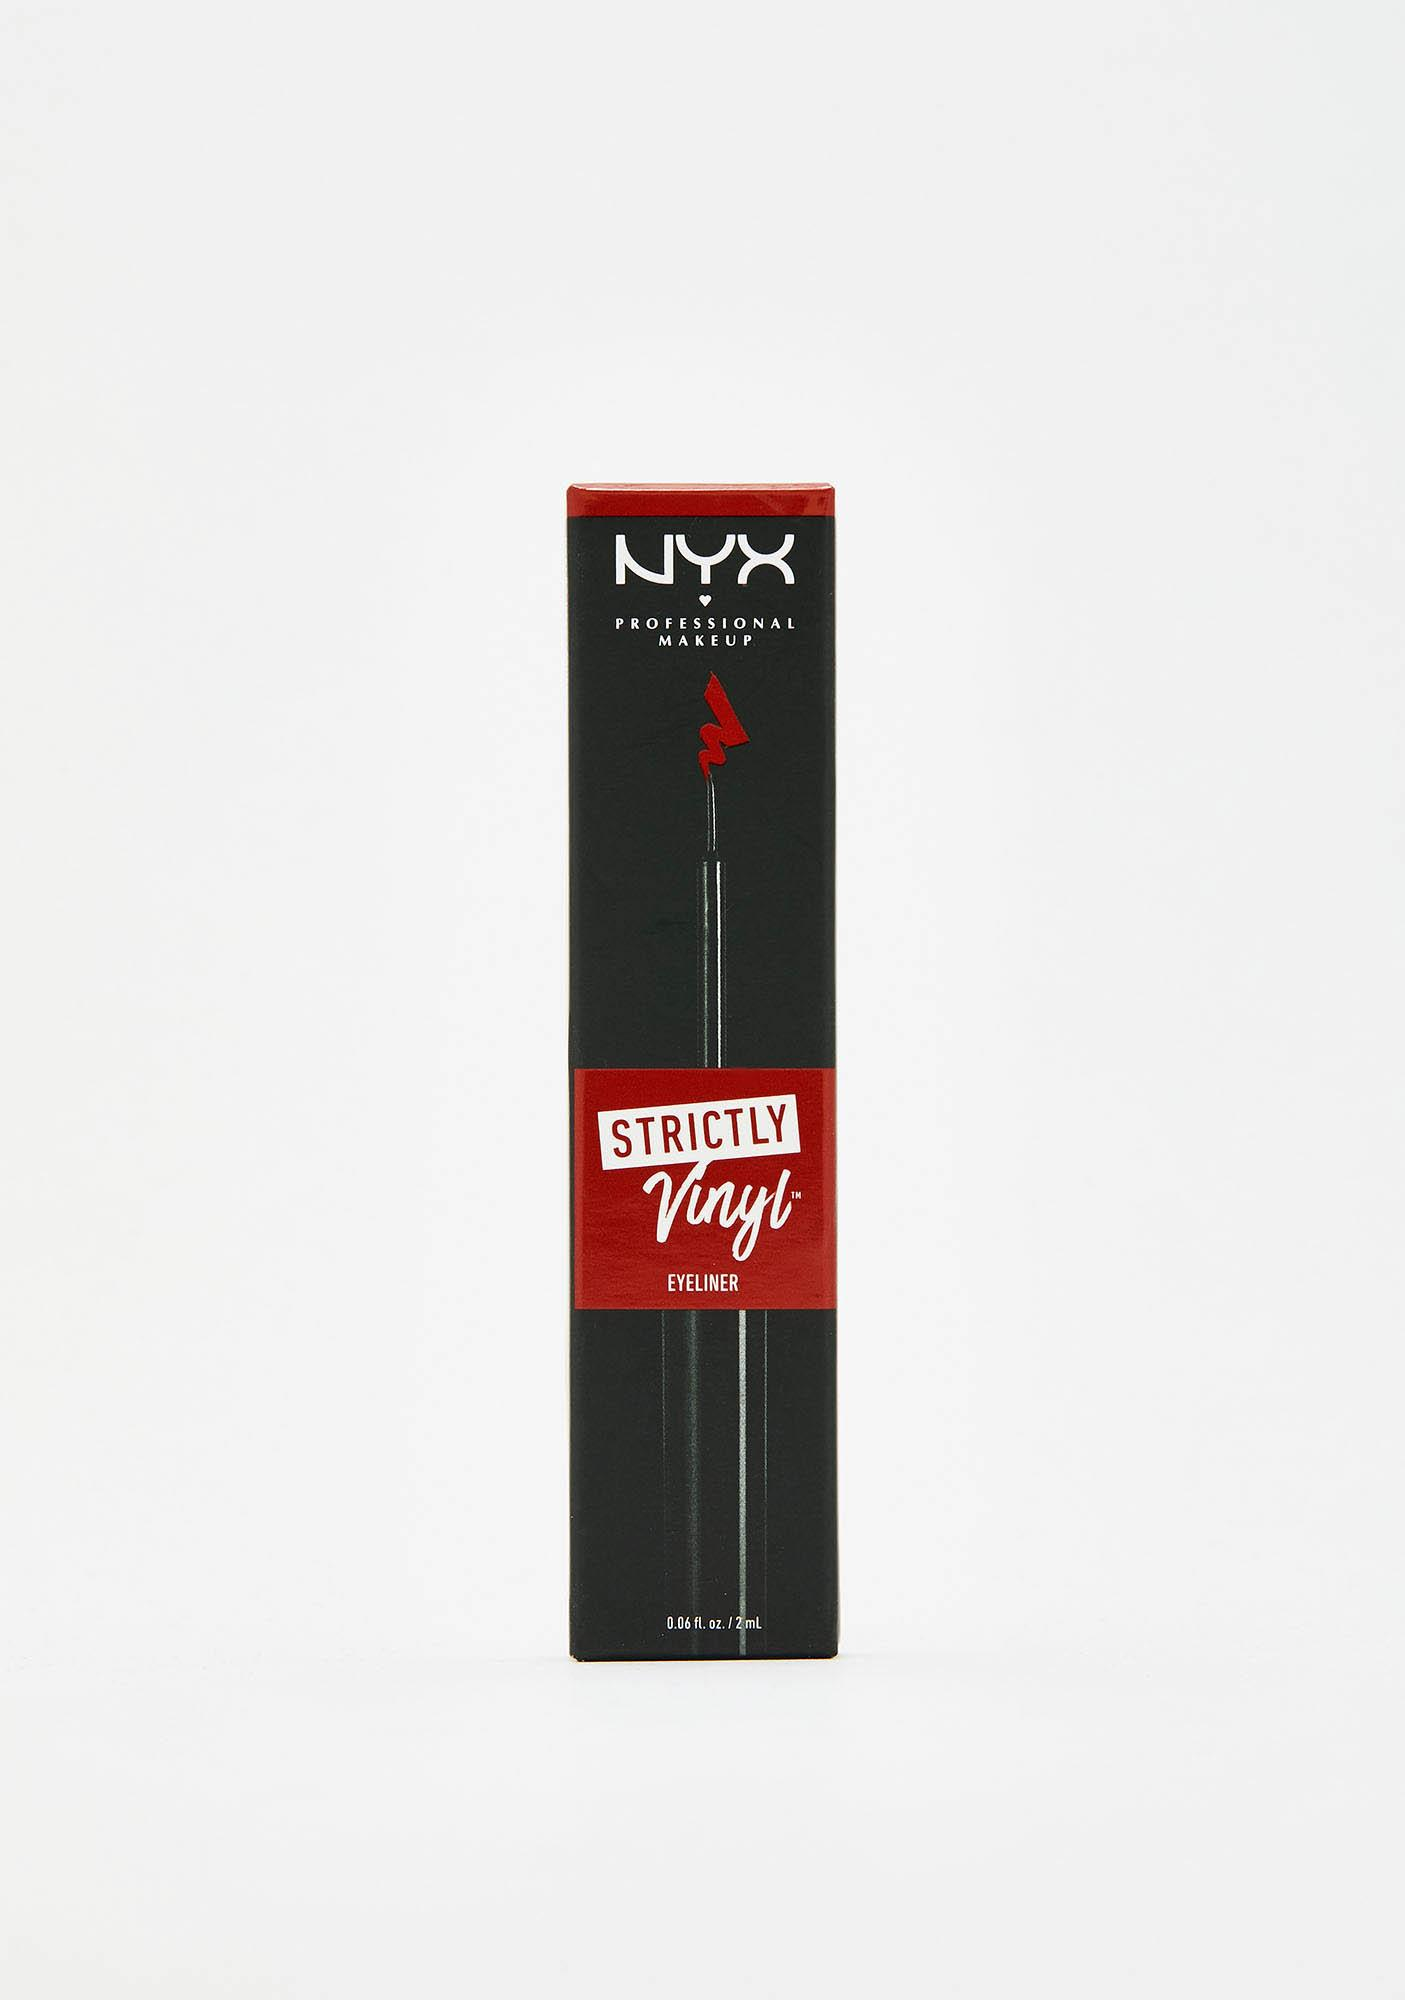 NYX Professional Makeup Hazy Strictly Vinyl Eyeliner